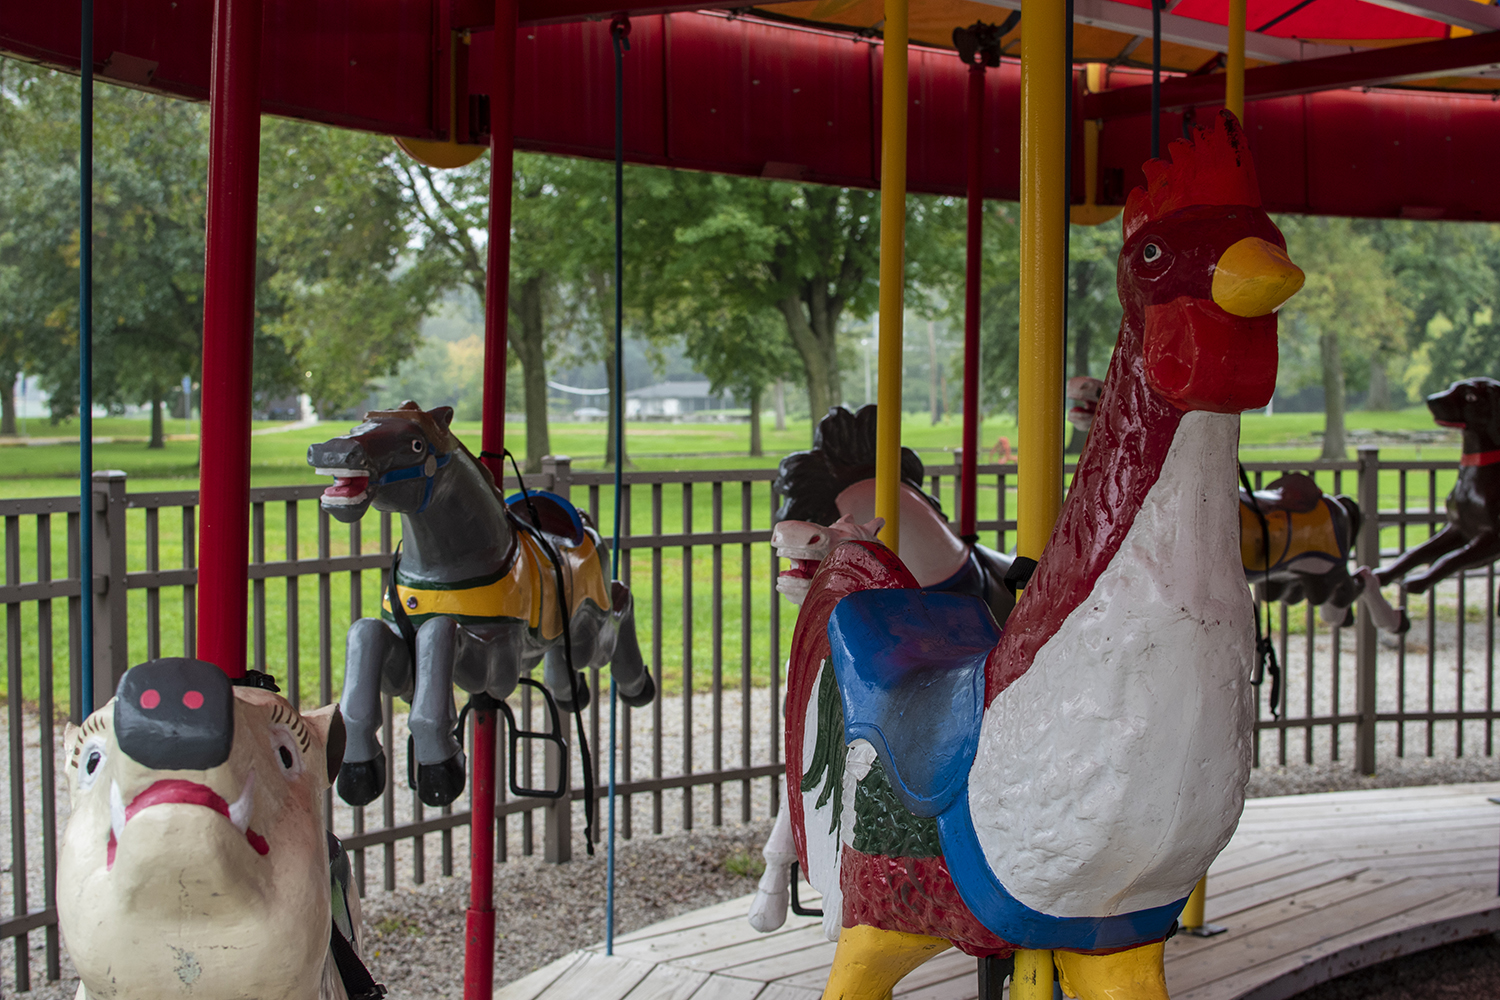 The City Park carousel is seen on Monday, October 1, 2018. Iowa City is auctioning off various amusement park rides from the park. (Thomas A. Stewart/The Daily Iowan)